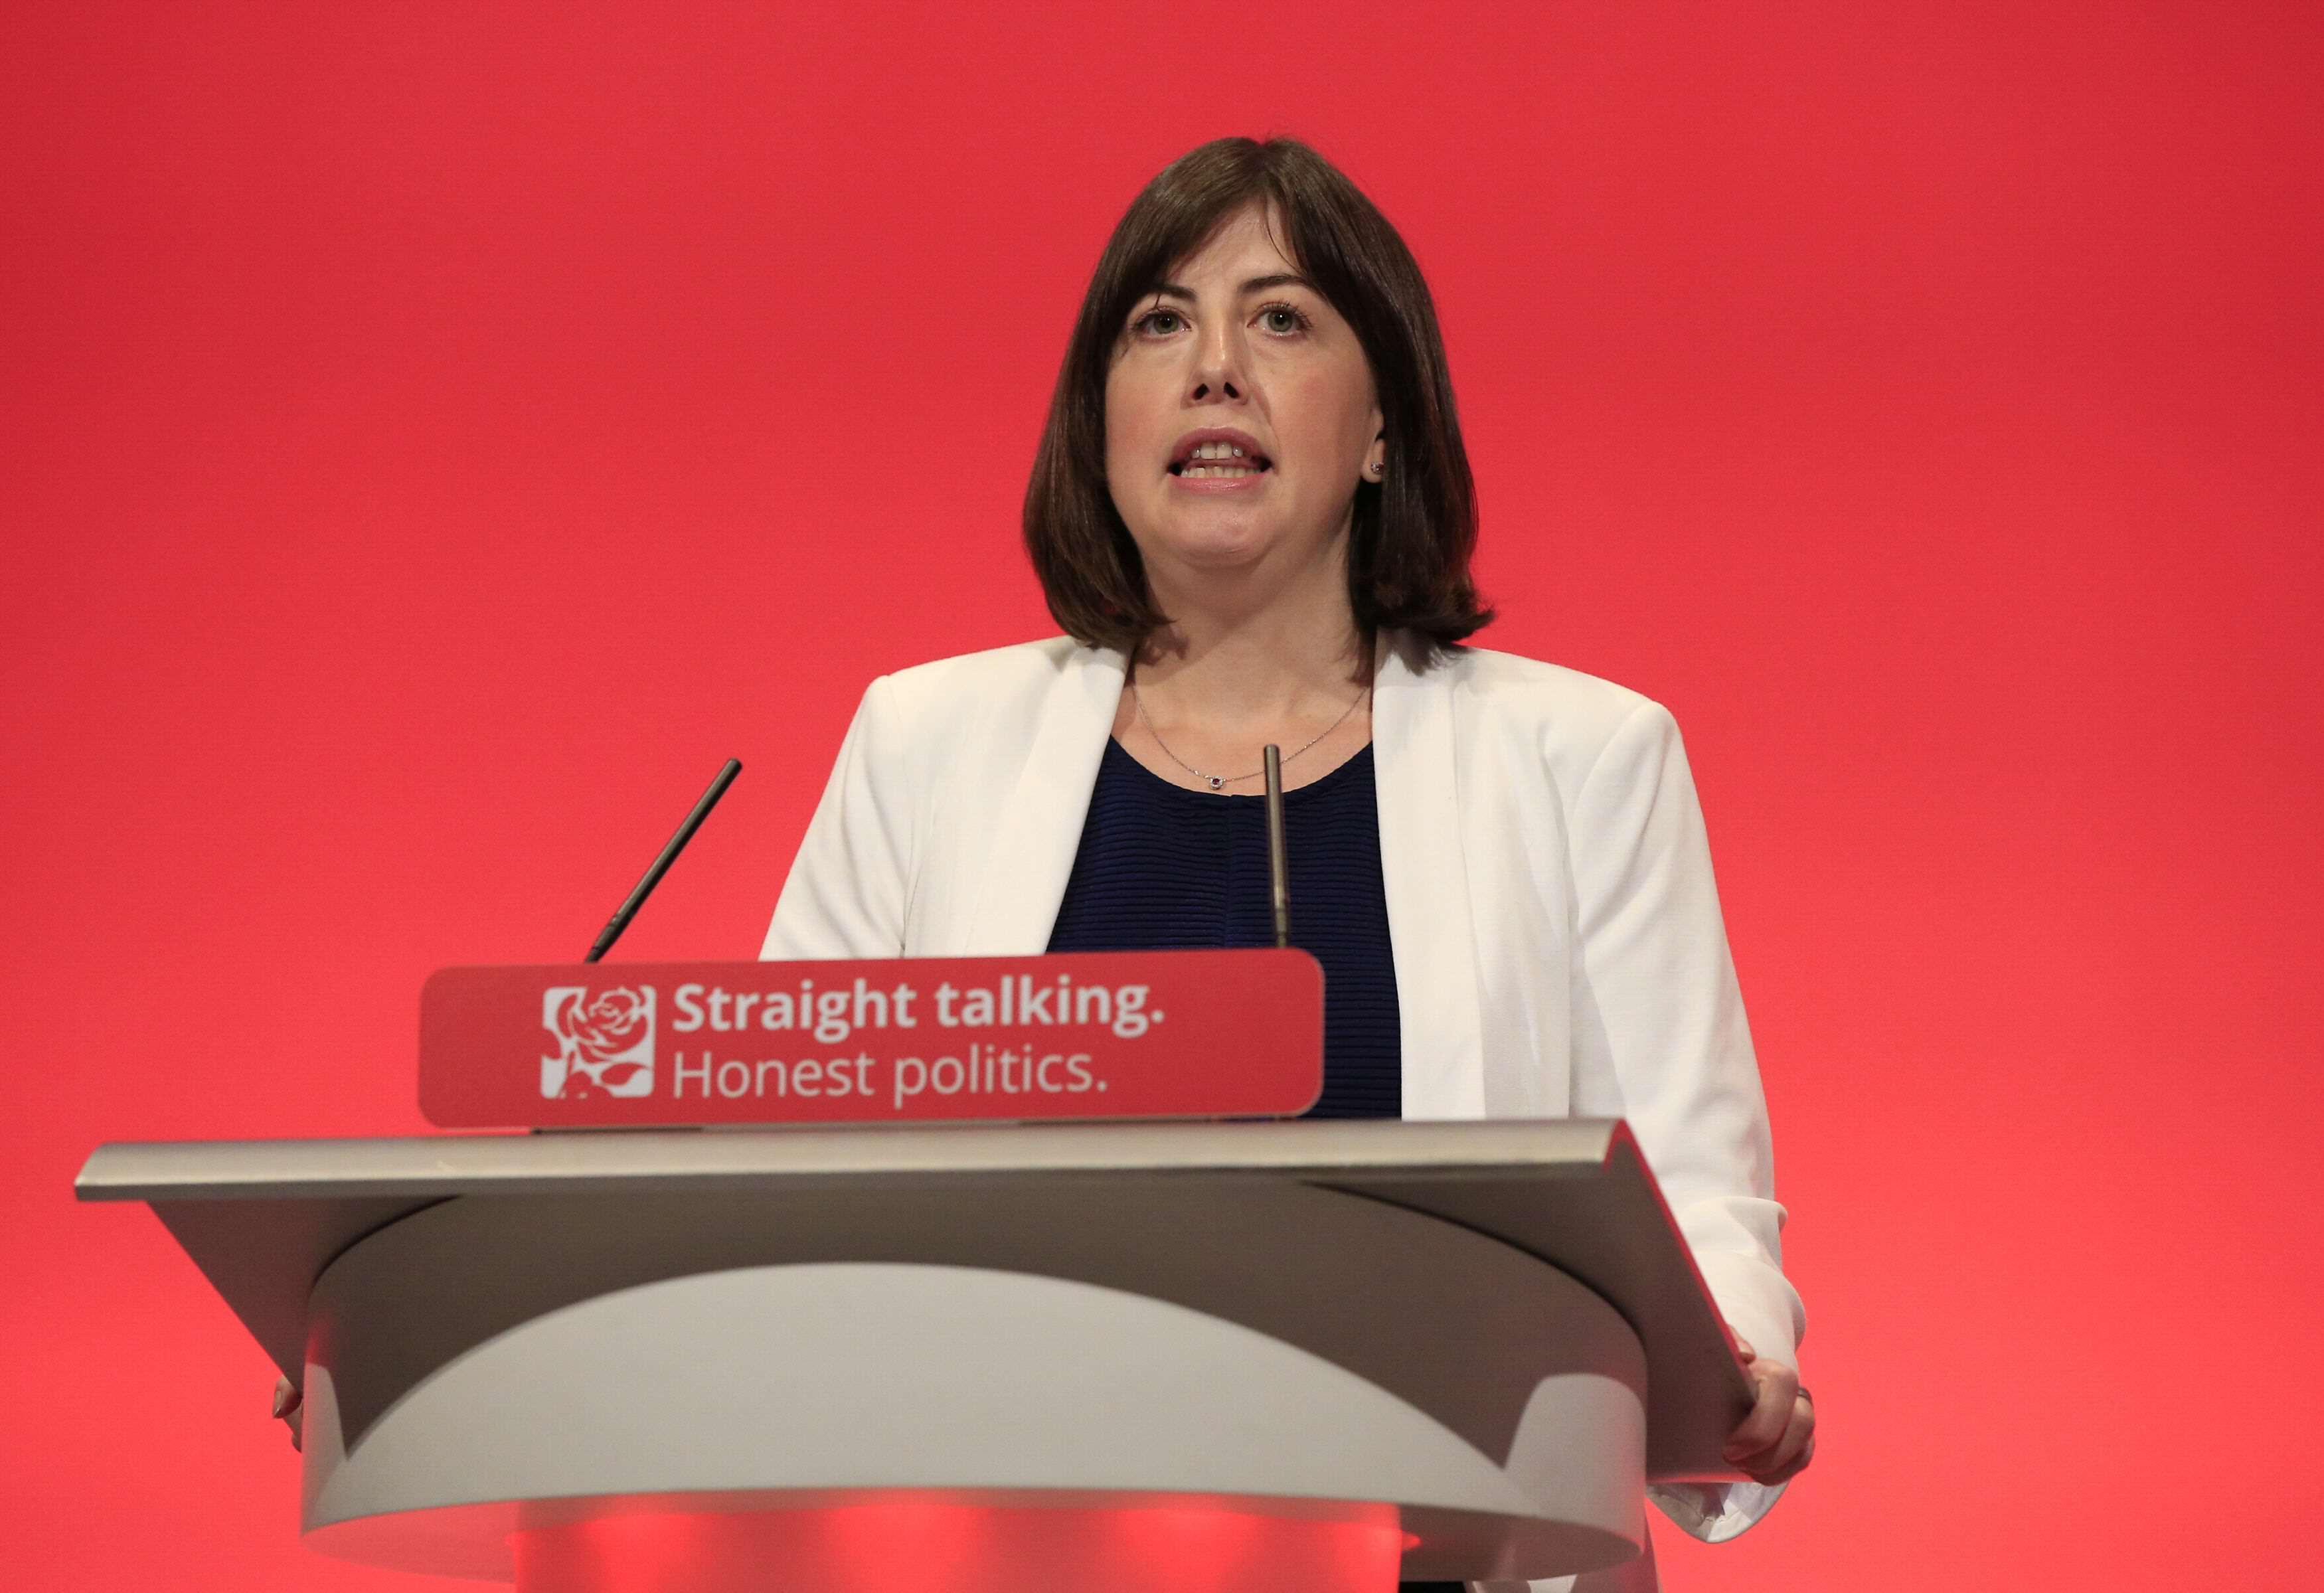 Equality Ministers Hypocritical Department Pays Women Less Than Men lucypowell